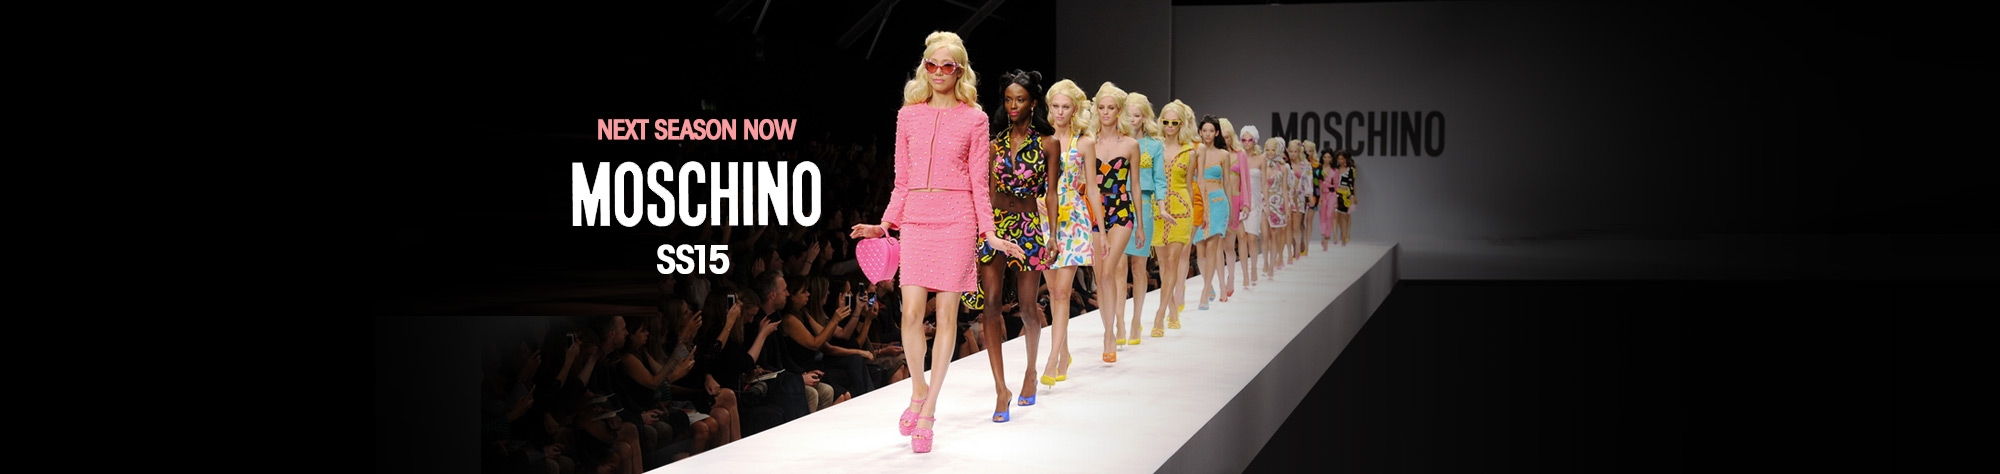 NEXT SEASON NOW MOSCHINO SS15